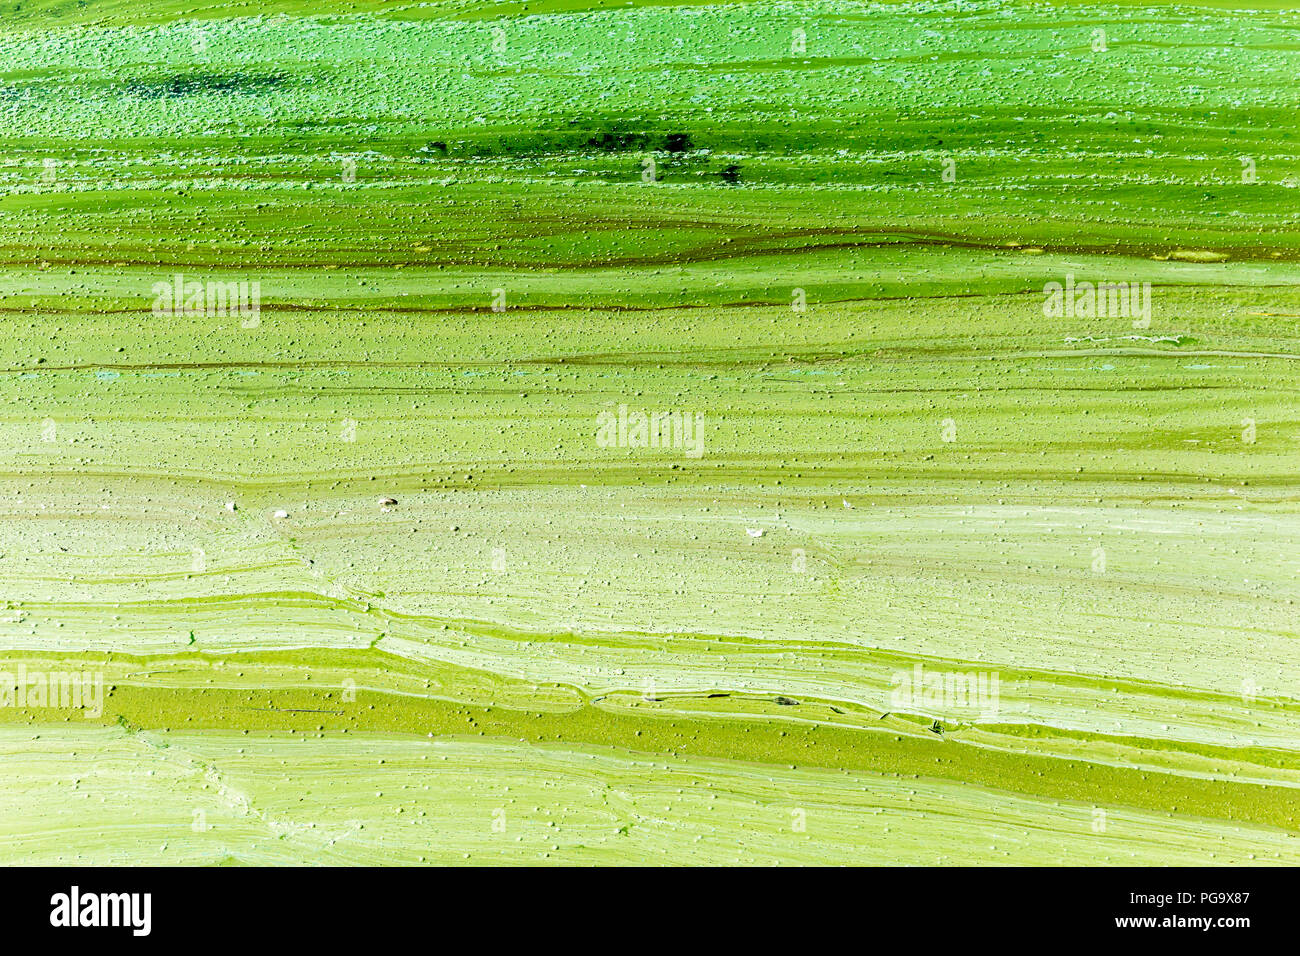 Algal bloom.Phytoplankton blooms in the sea or freshwater.Abstract texture and background for the site about lake, sea,ecology,art, seasons,disasters. - Stock Image